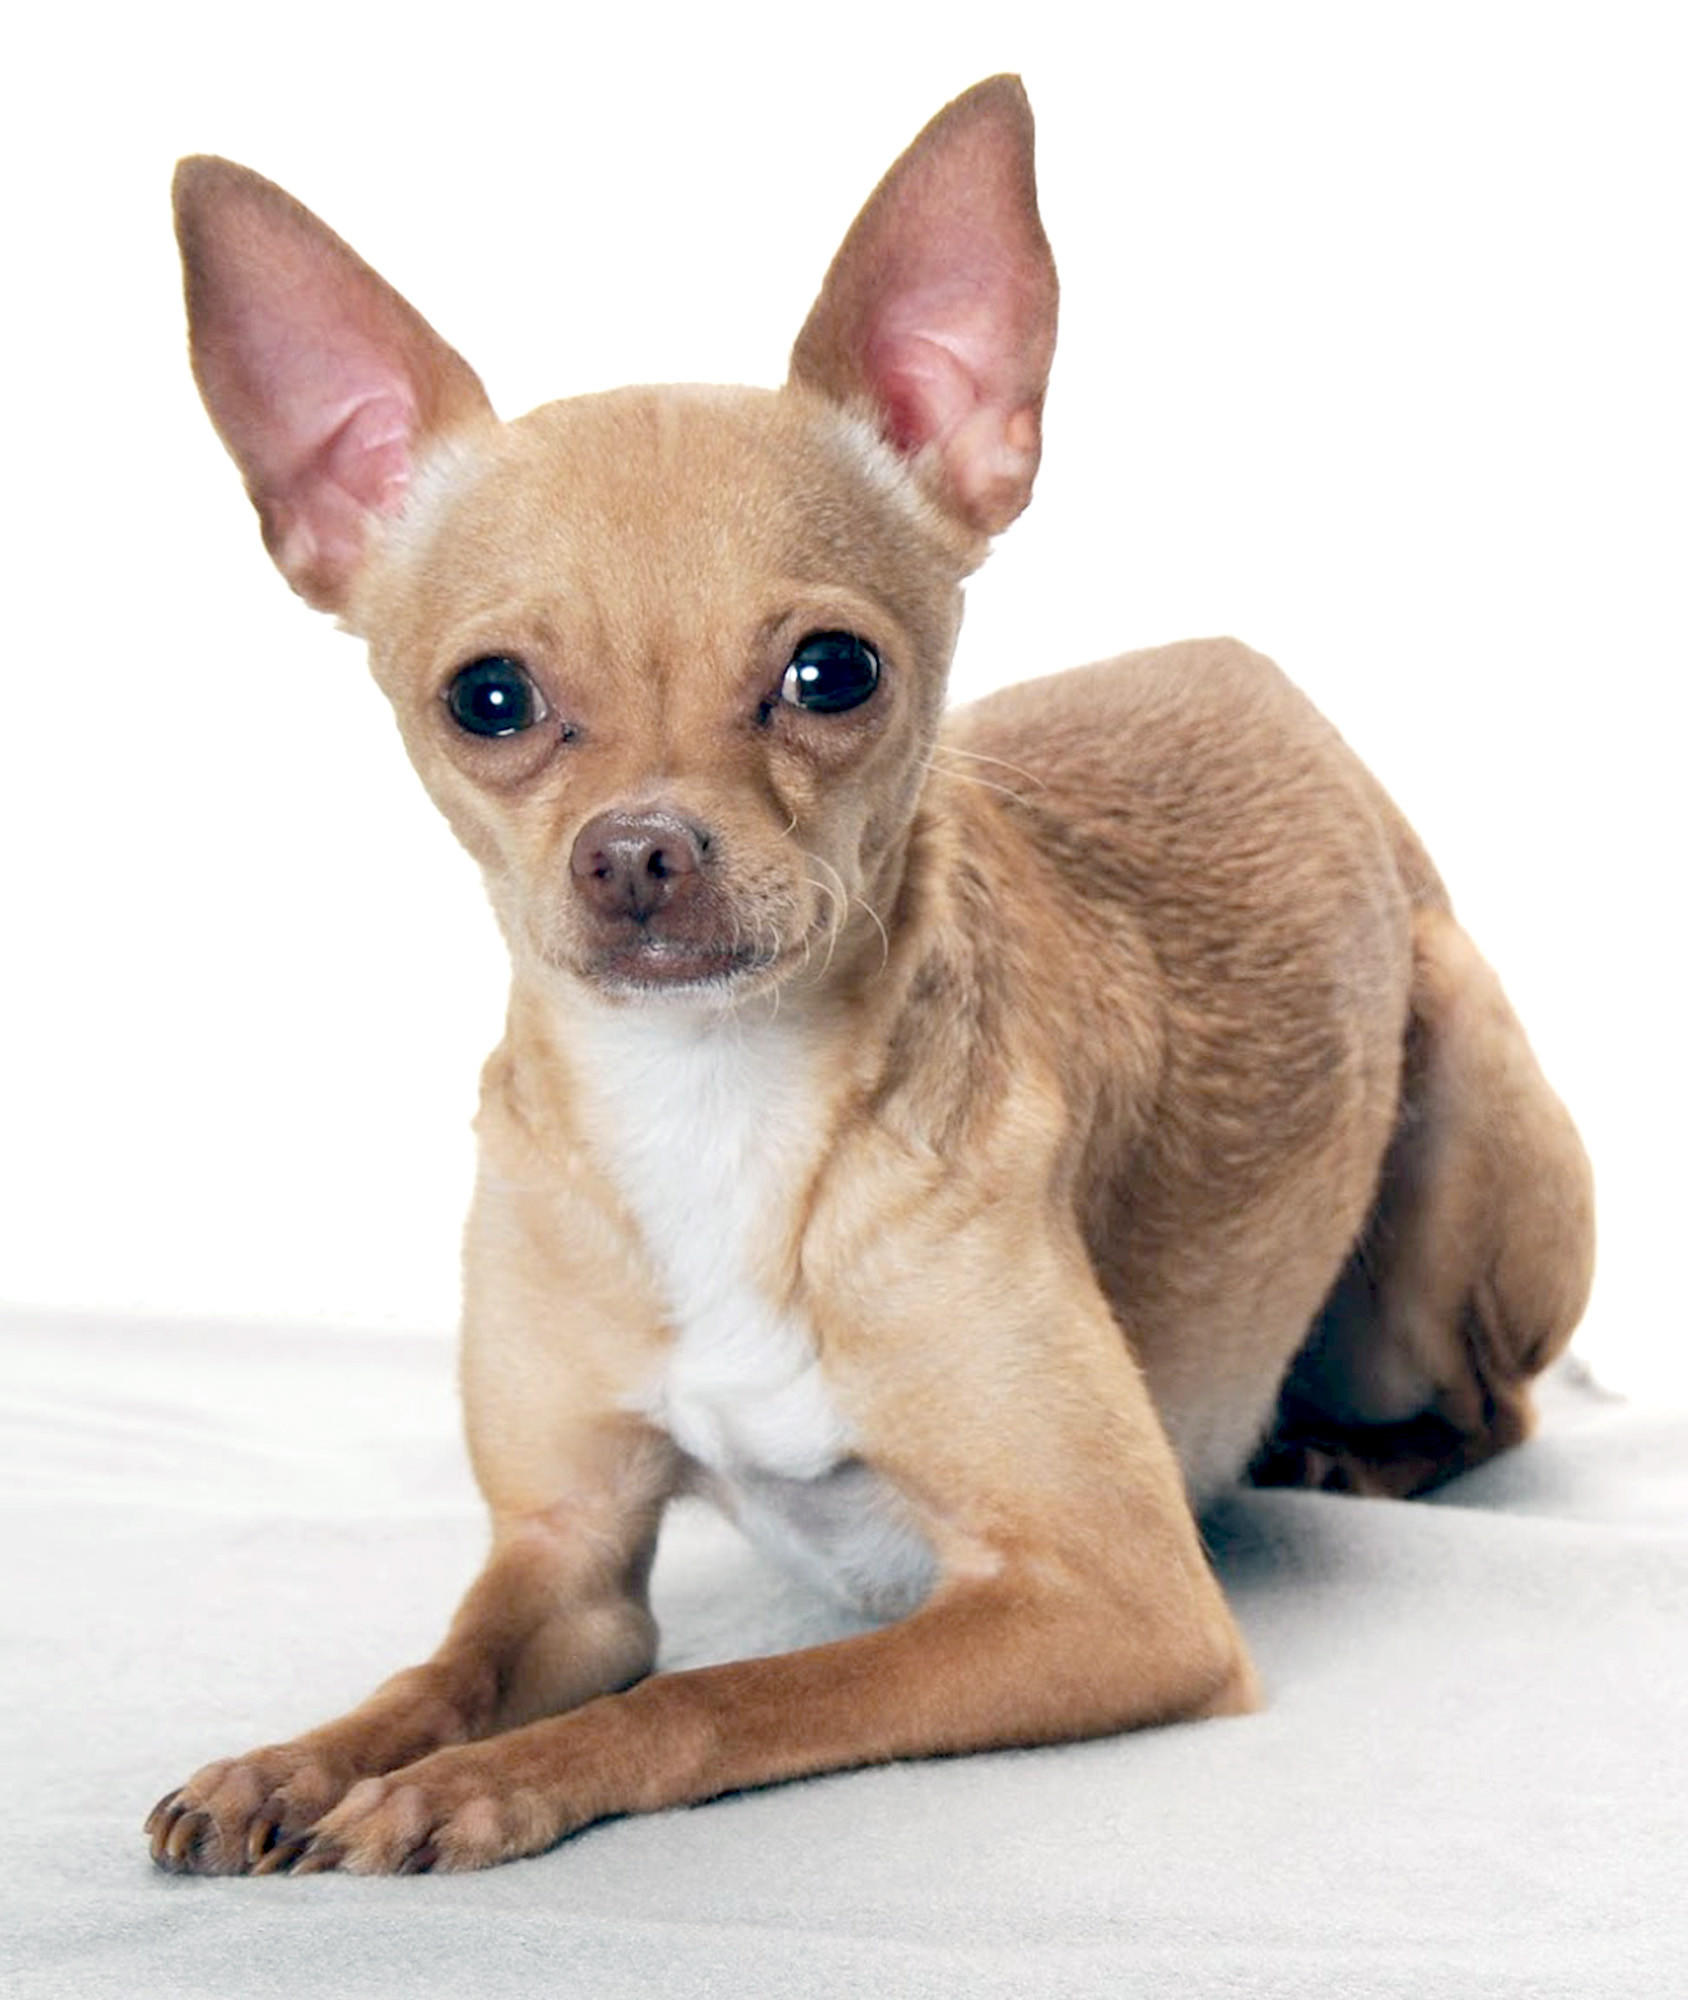 Bugs, a brown-coated Chihuahua, is up for adoption.